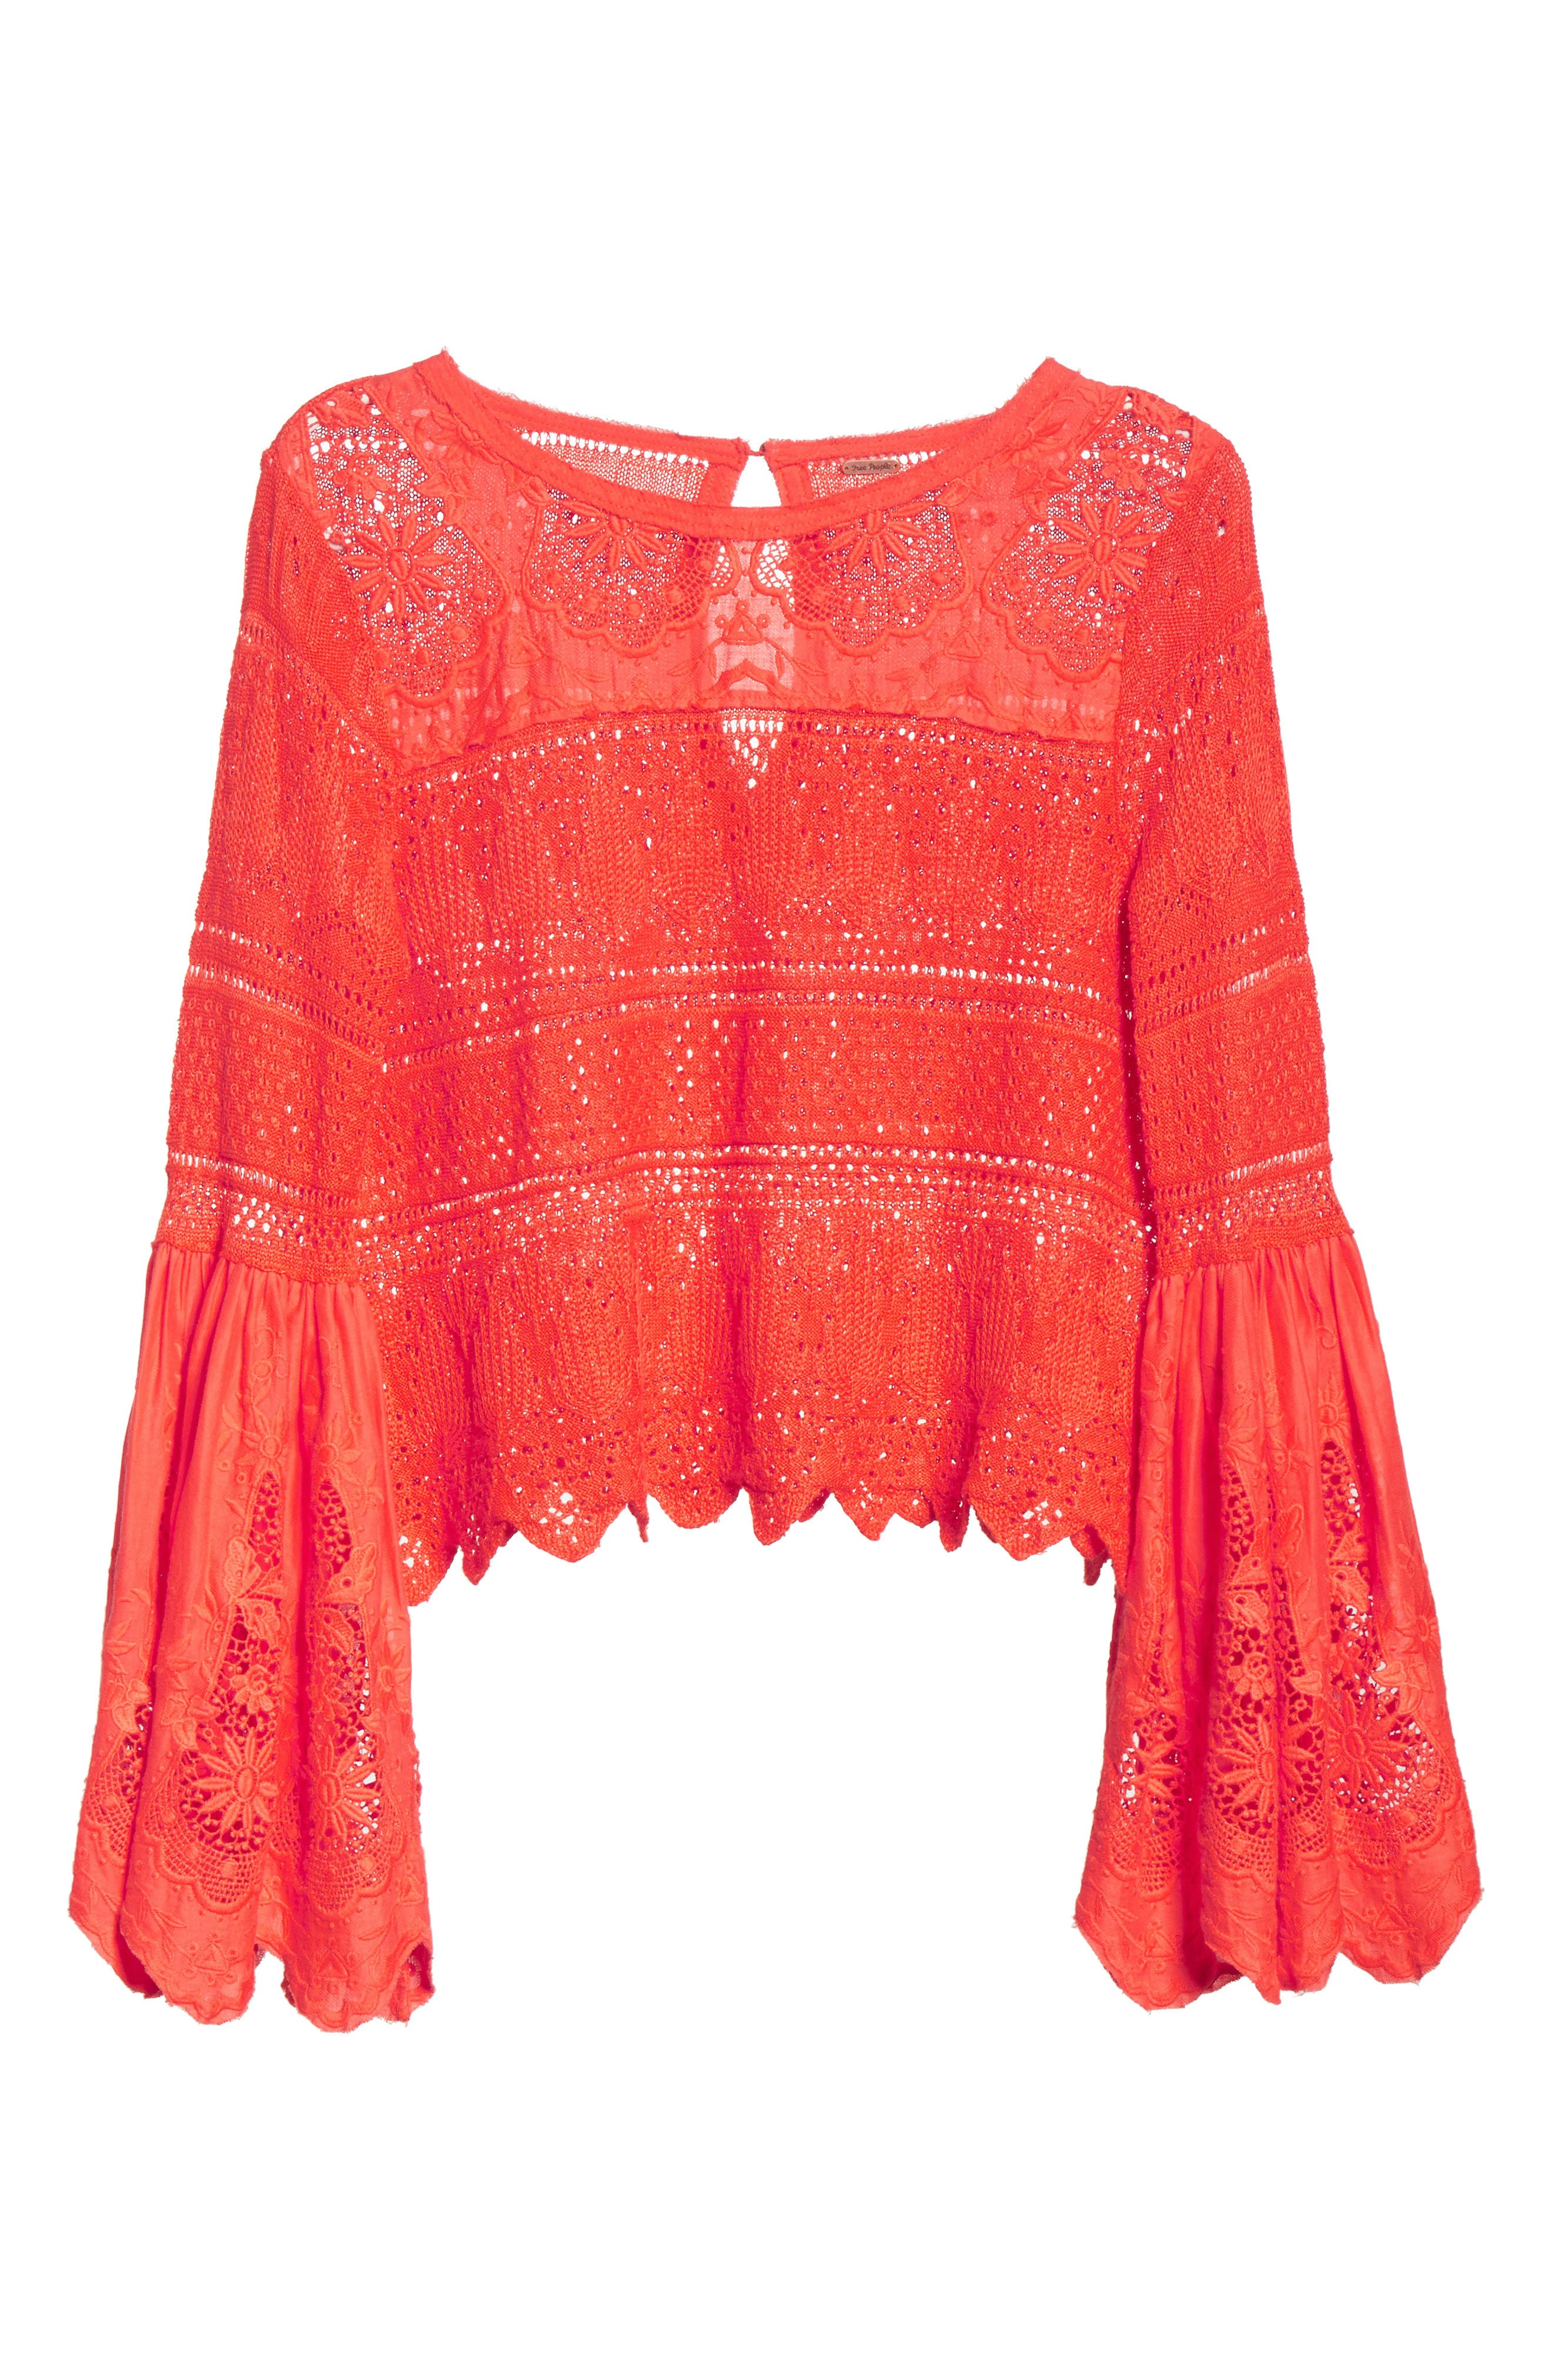 Once Upon a Time Lace Top,                             Alternate thumbnail 23, color,